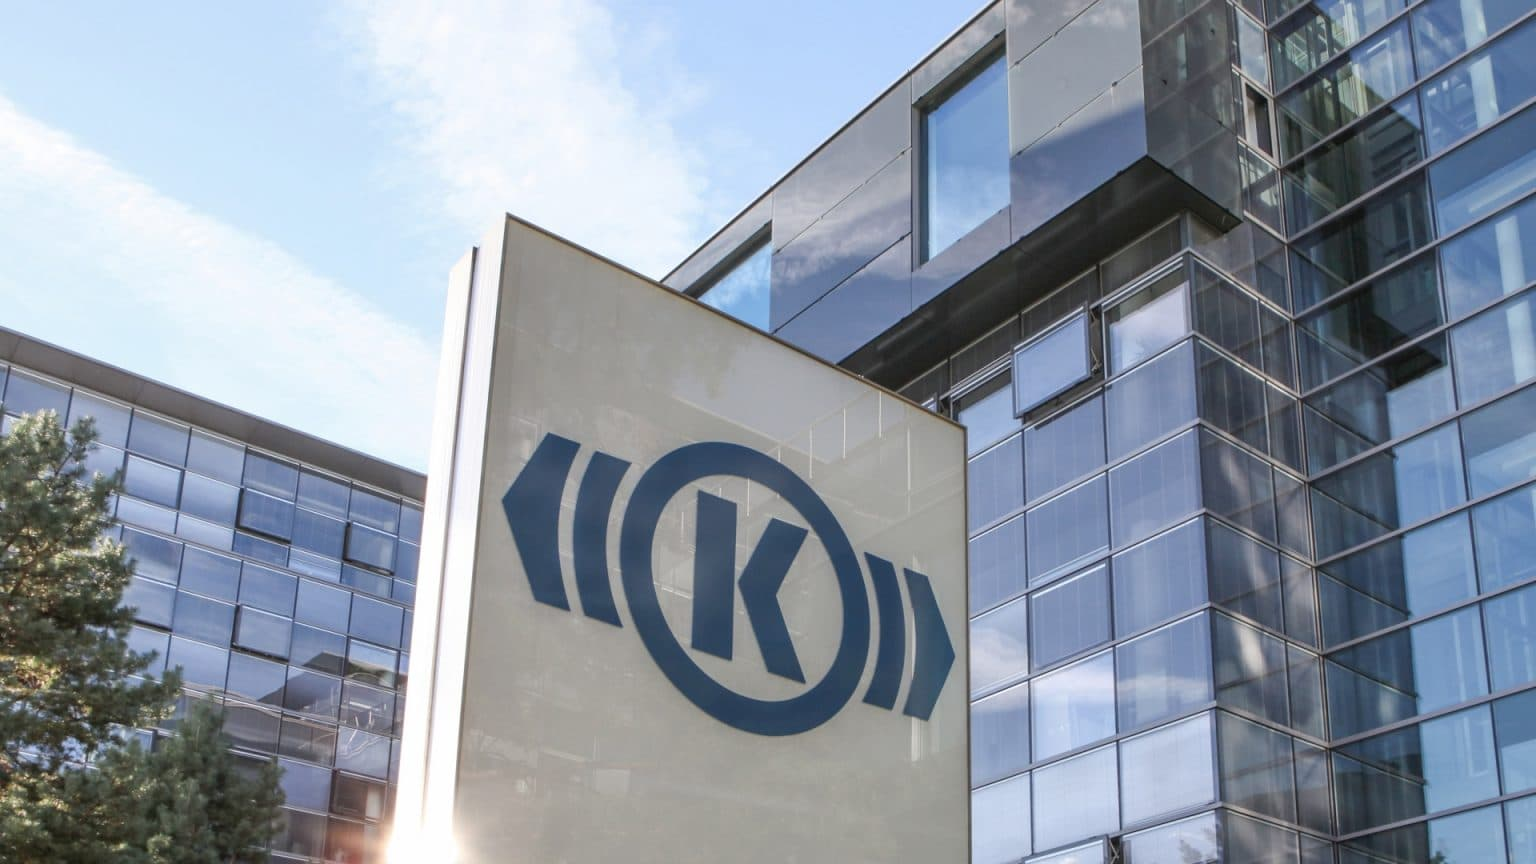 Knorr-Bremse's recently signed a 10-year contract with a major European OEM